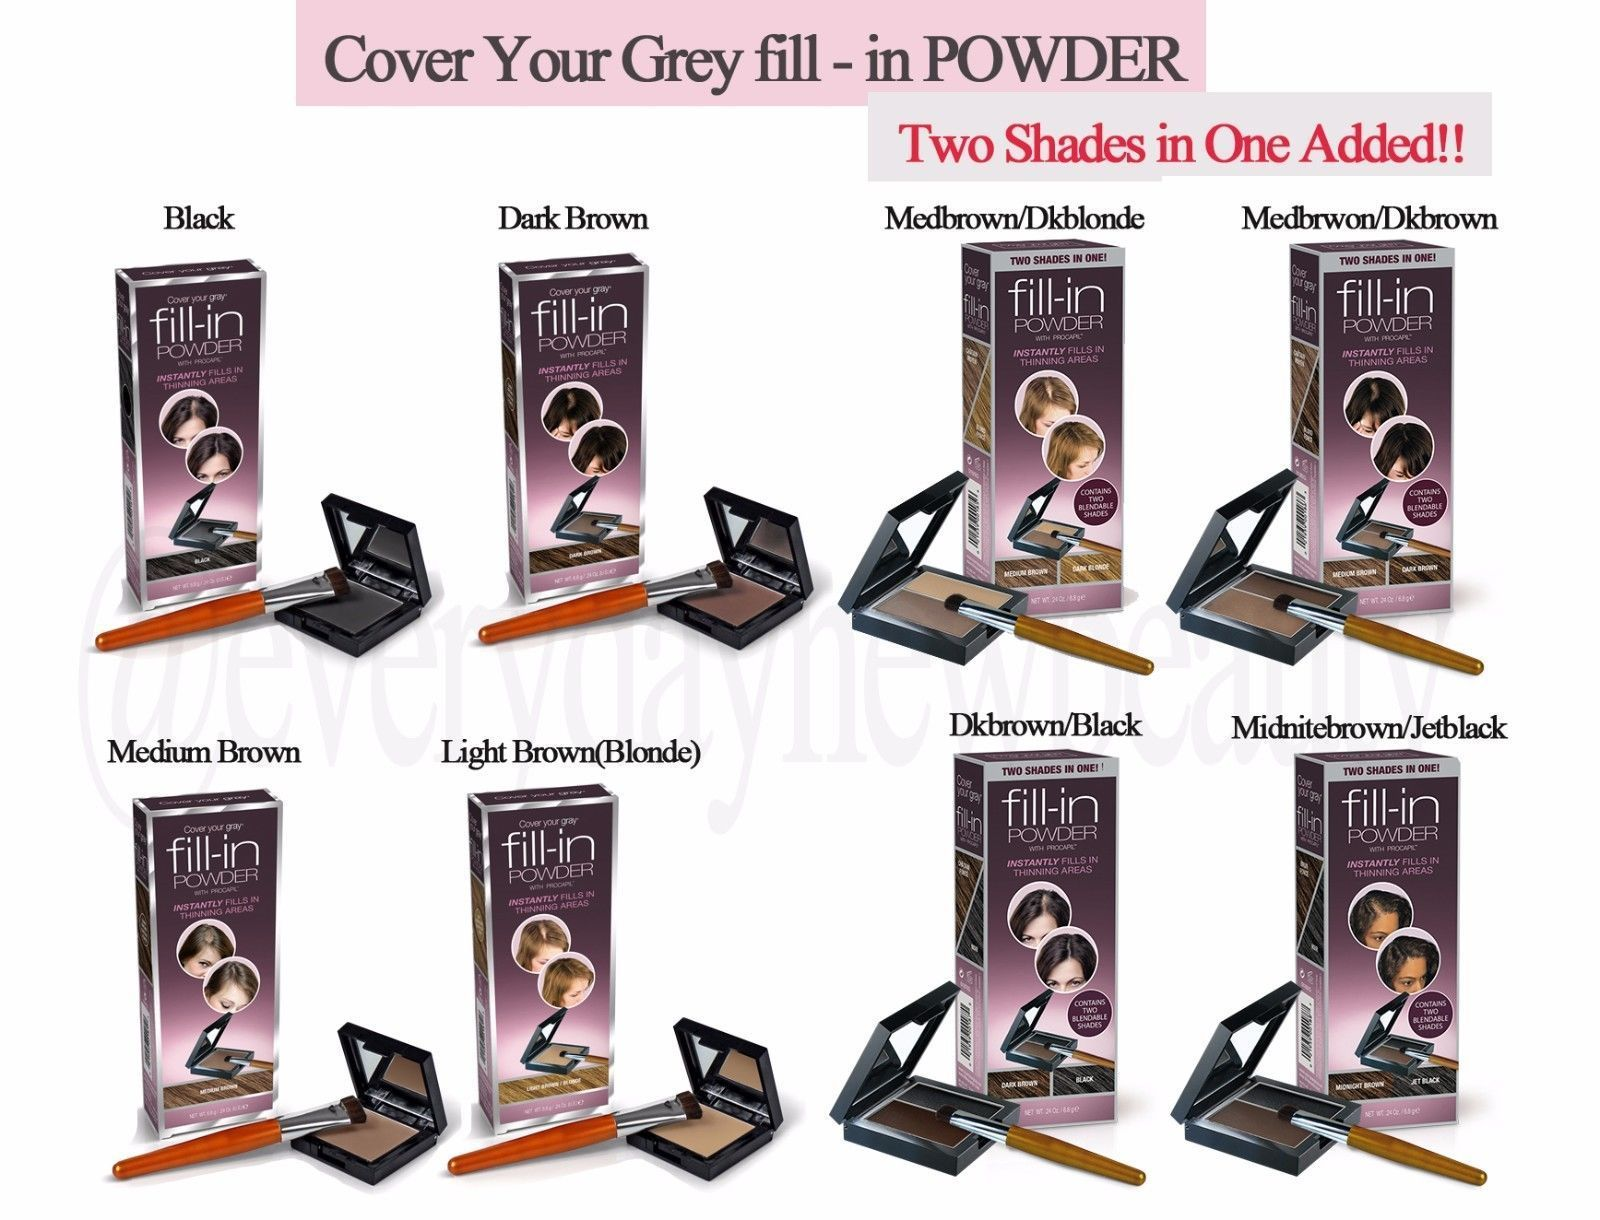 504b39aa070 Cover Your Grey Fill-In Hair Powder With Procapil - 2 Shades In 1 Added!!